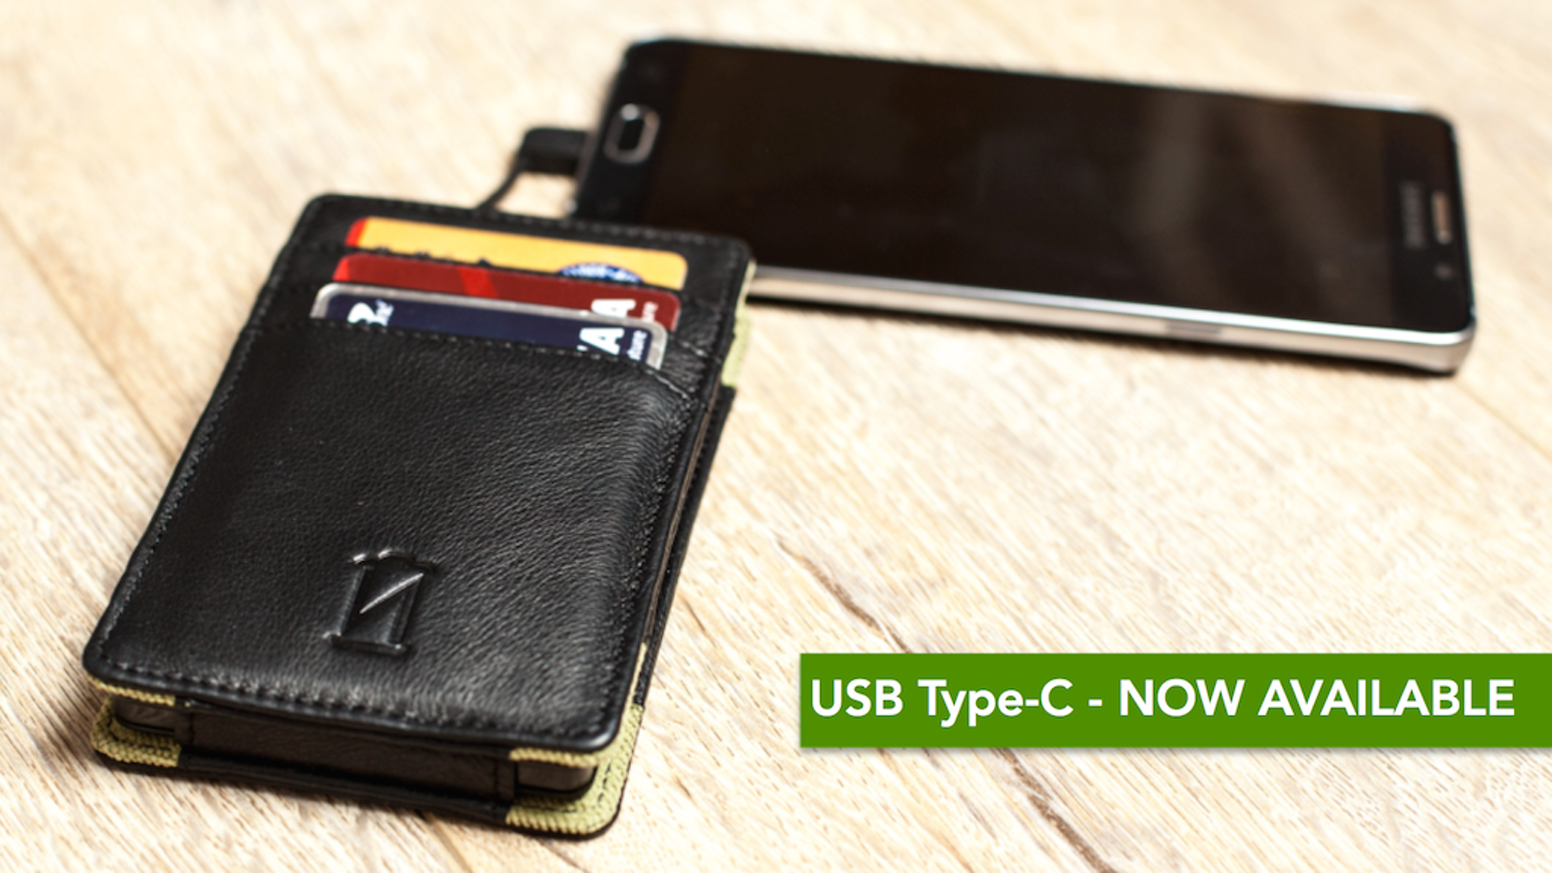 Never have your phone die on you again! With a 4,000 mAh battery bank built into our wallet, it is the perfect everyday carry solution.